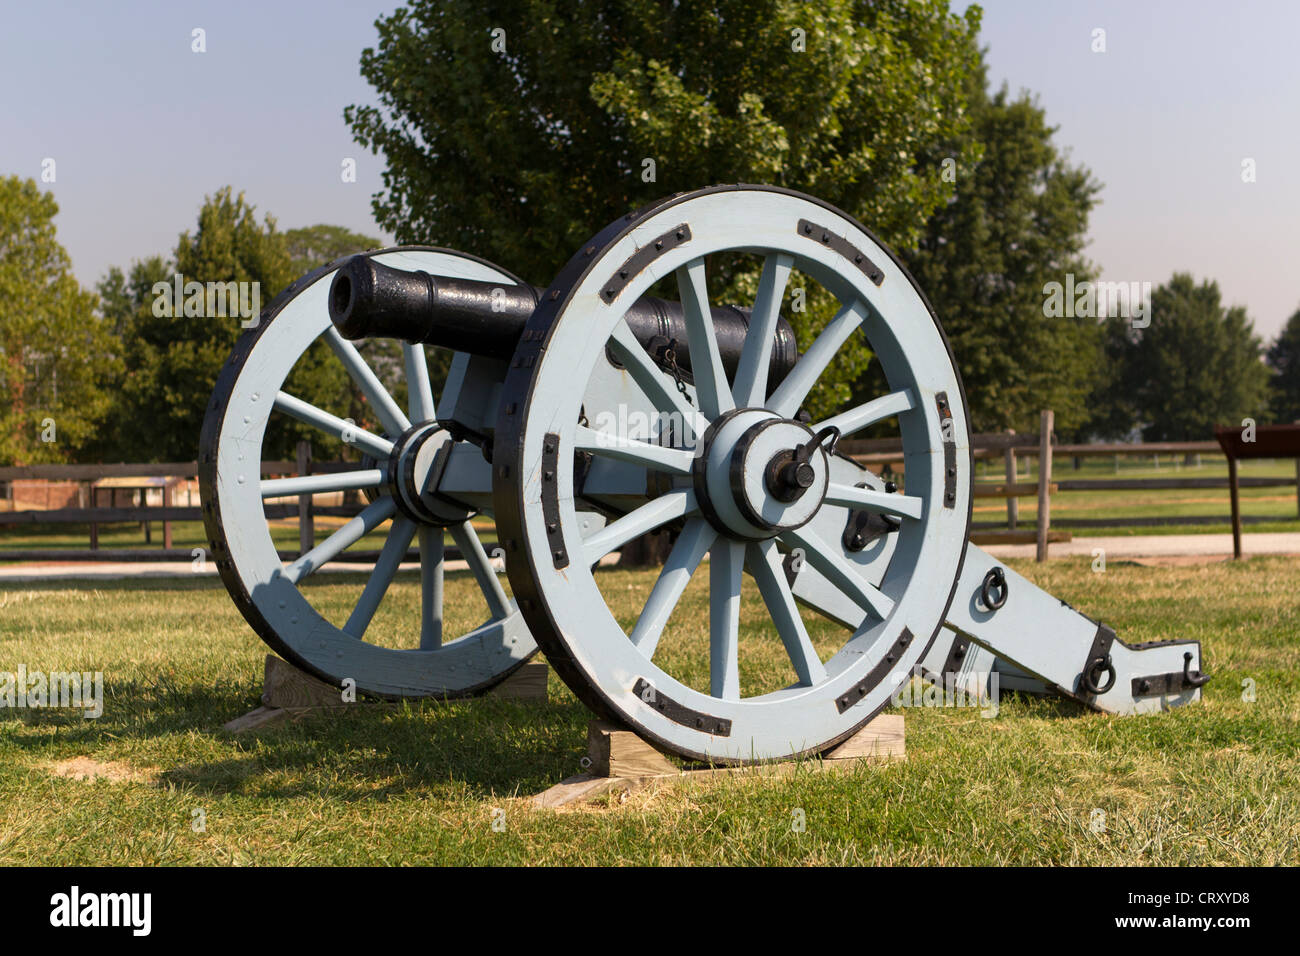 Artillerie-Kanone in Fort McHenry in Baltimore, Maryland USA Stockbild